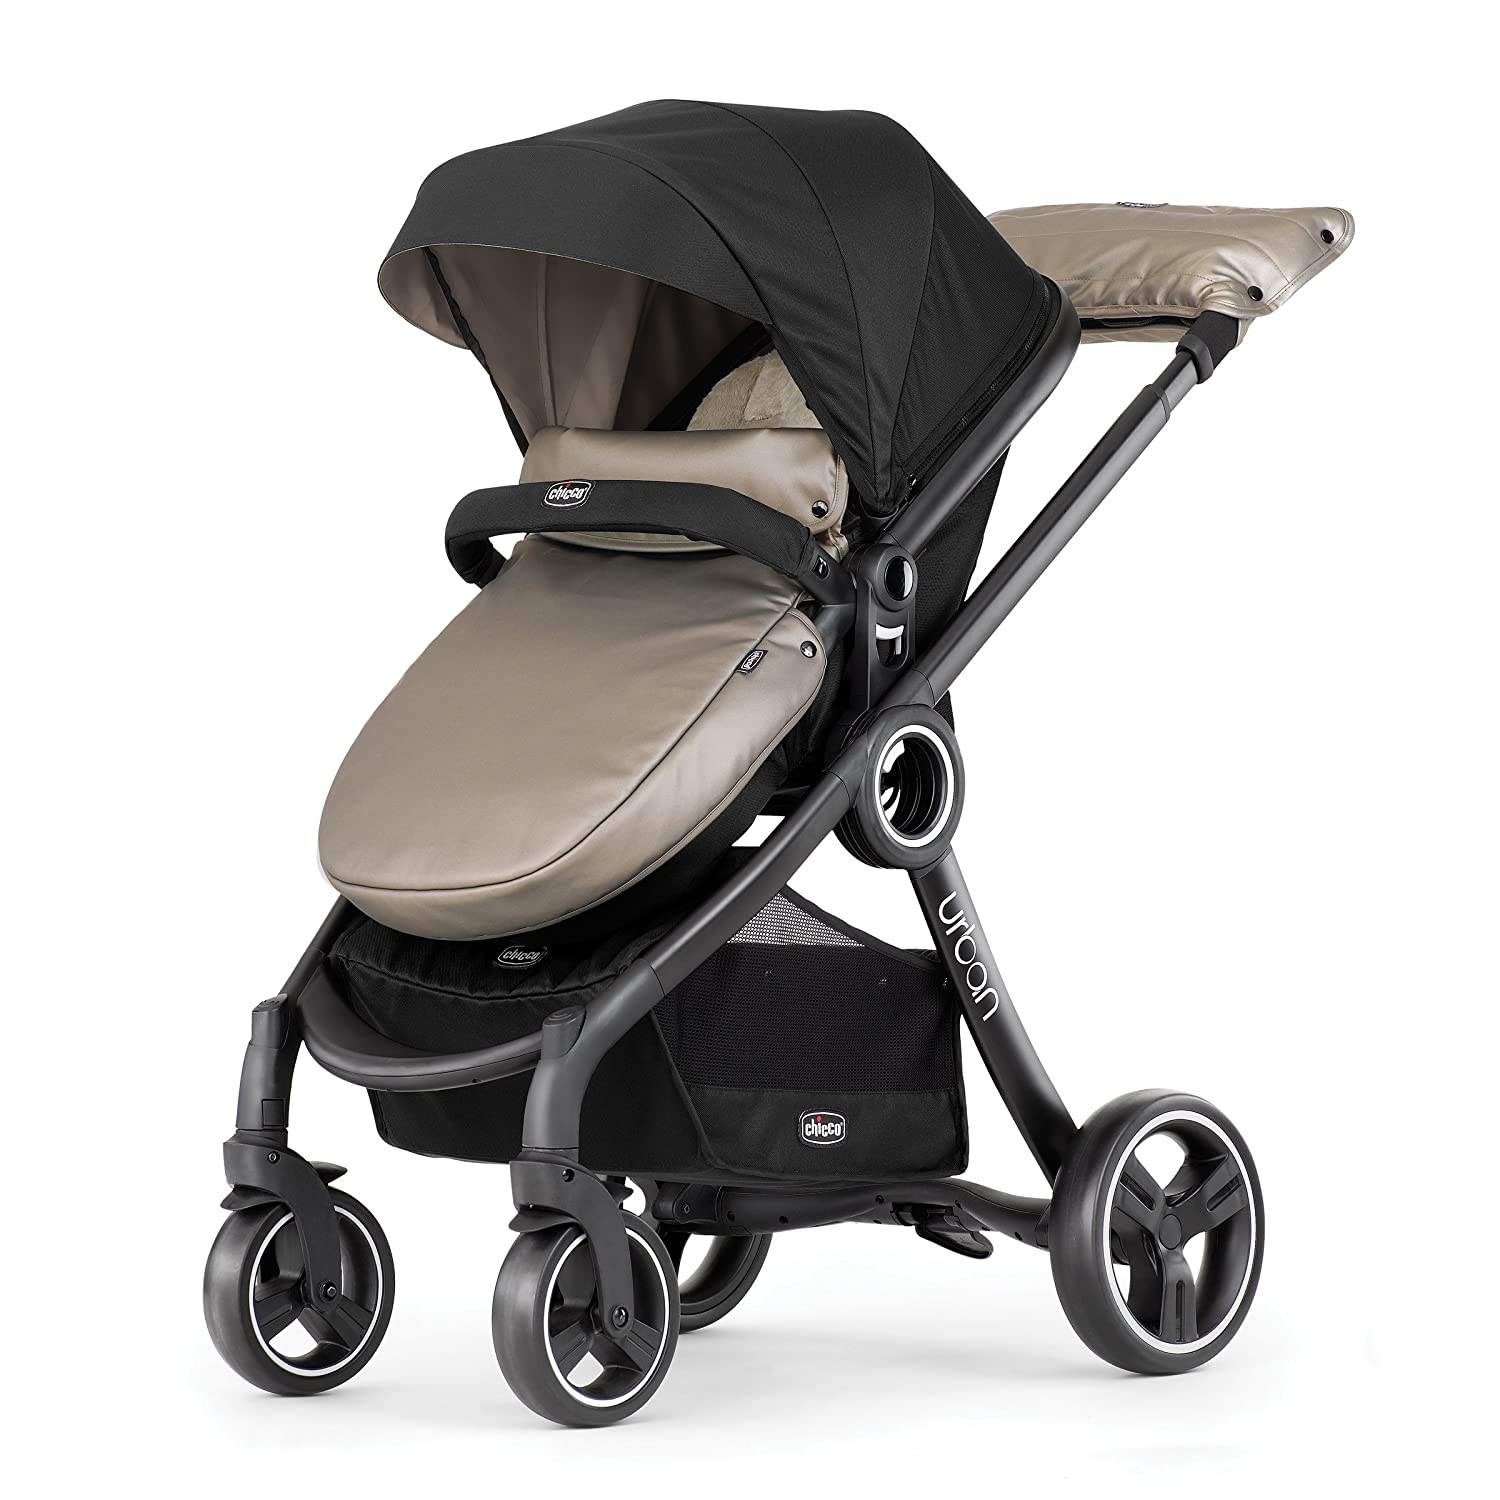 Amazon.com: Chicco Urban carriola, trufa: Baby